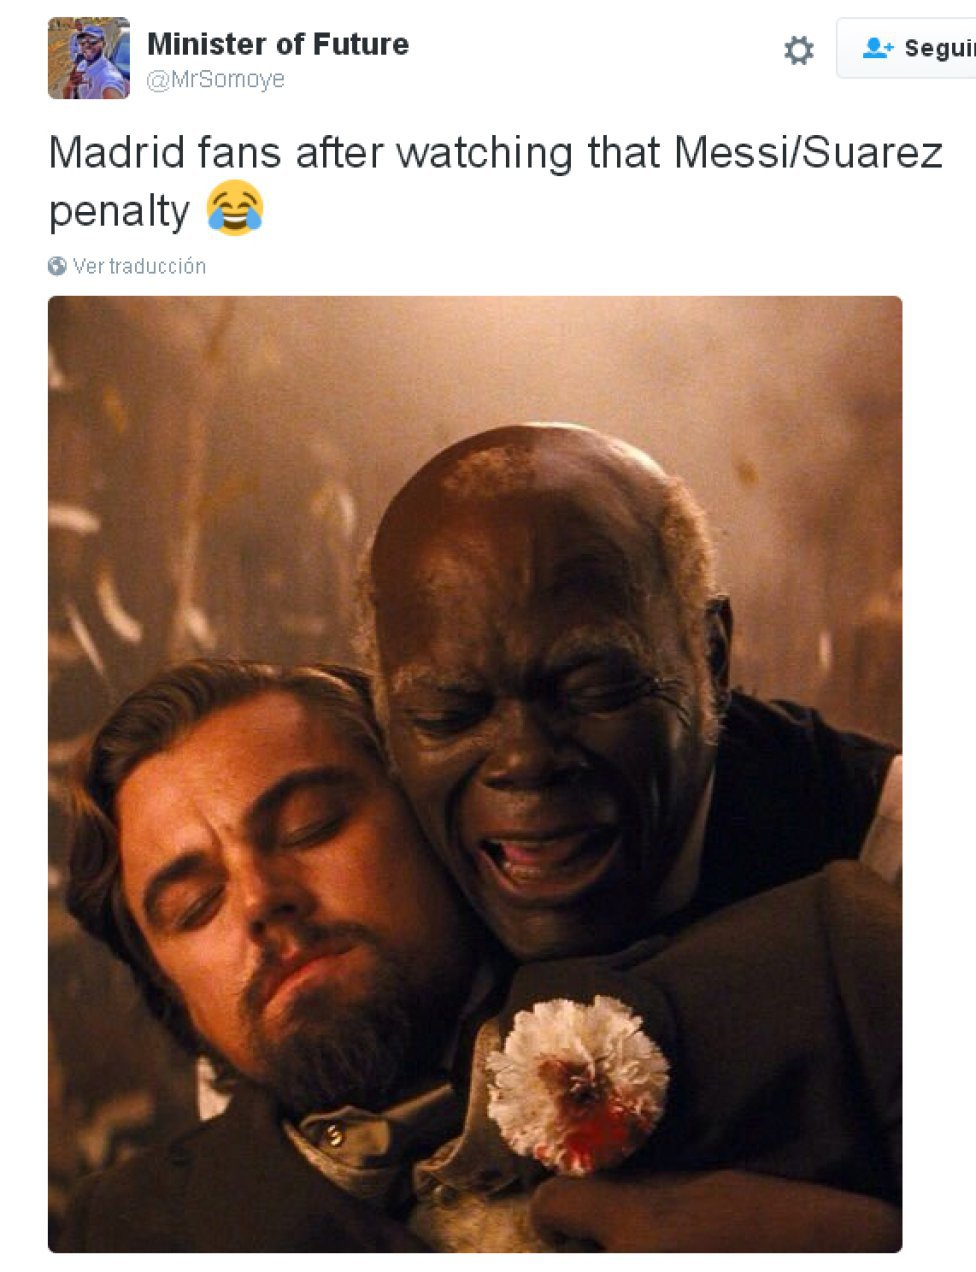 Memes The Best Memes From Around The Web After Messis Penalty